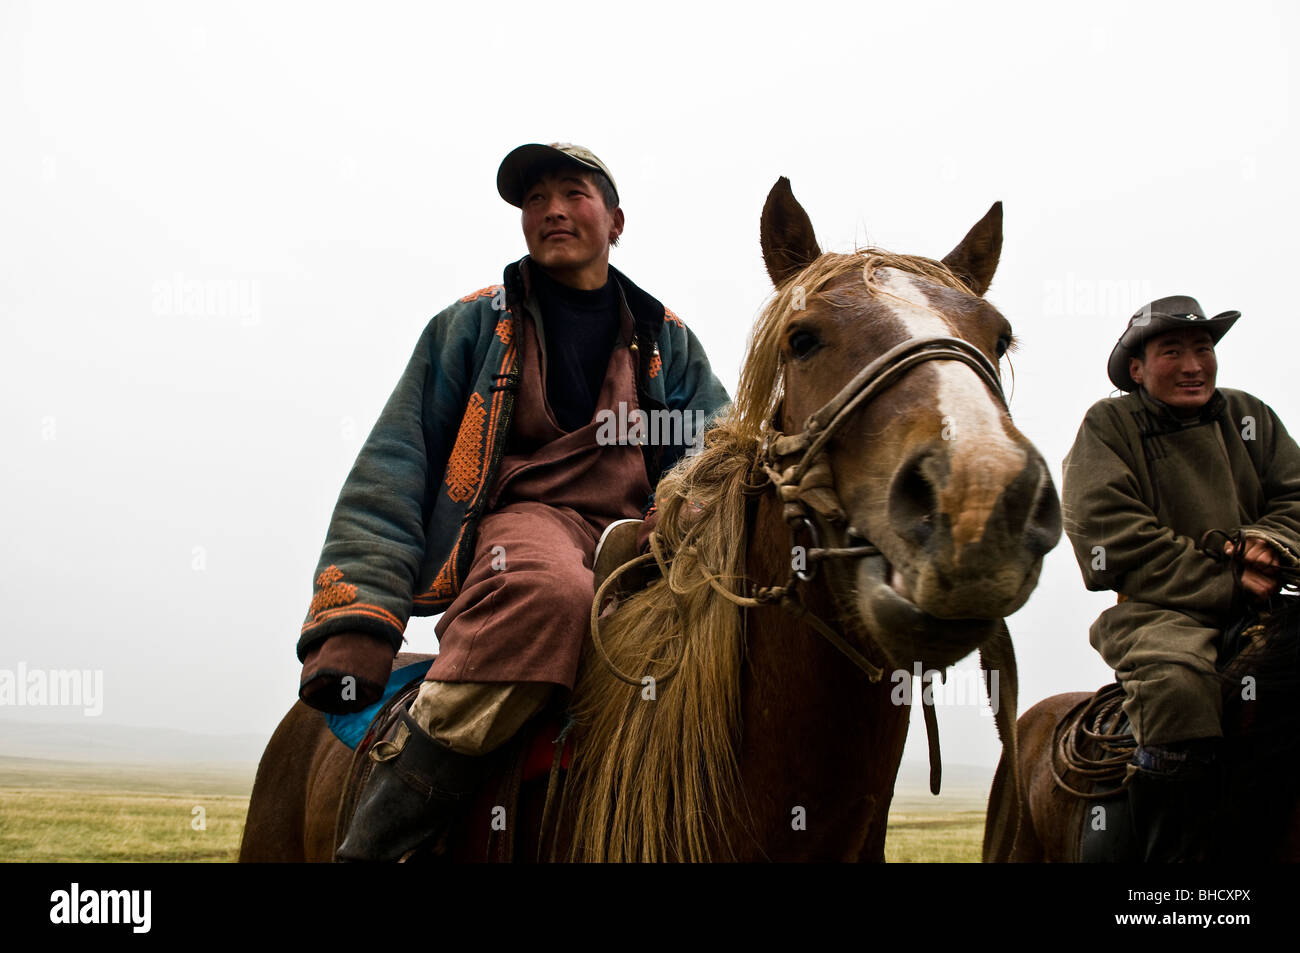 mongol-nomads-on-their-horses-in-the-vas